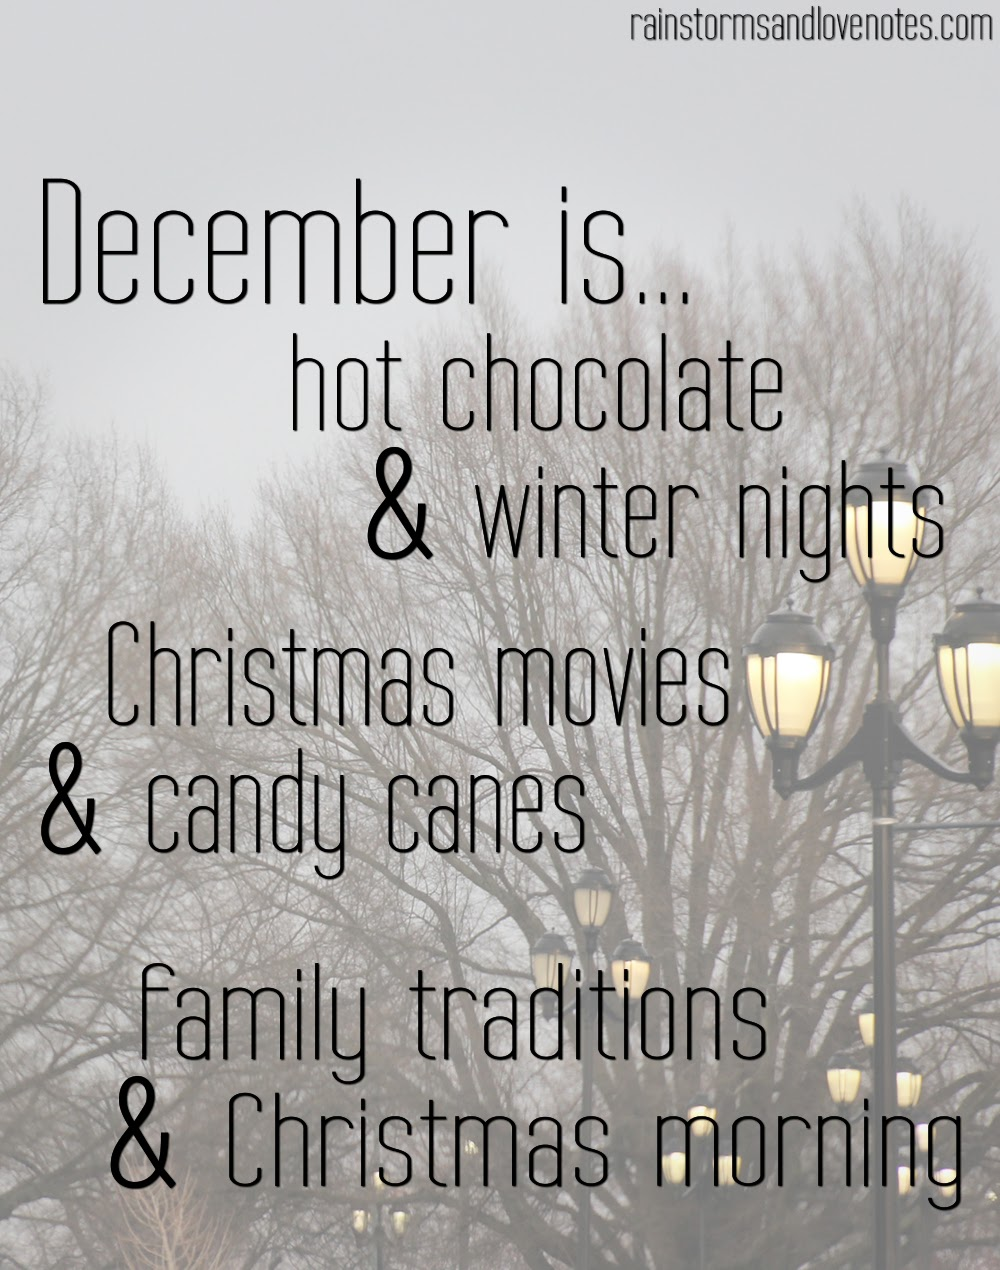 December Inspiration Rainstorms And Love Notes